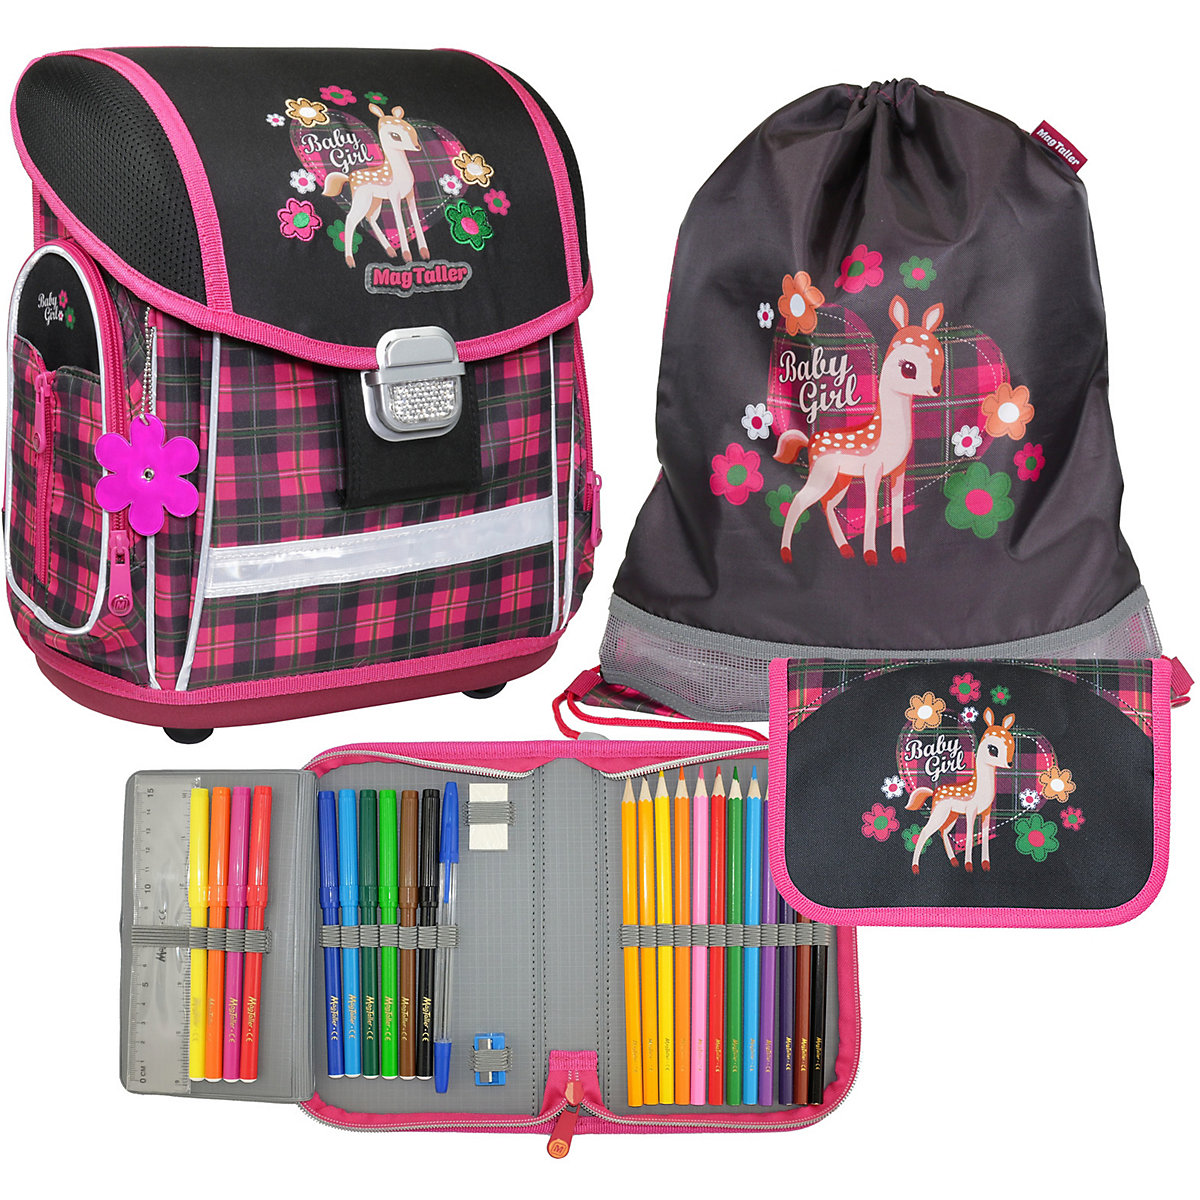 School Bags MAGTALLER 11154860 schoolbag backpack knapsacks orthopedic bag for boy and girl animals flower sprints school bags magtaller 11154976 schoolbag backpack knapsacks orthopedic bag for boy and girl animals flower sprints